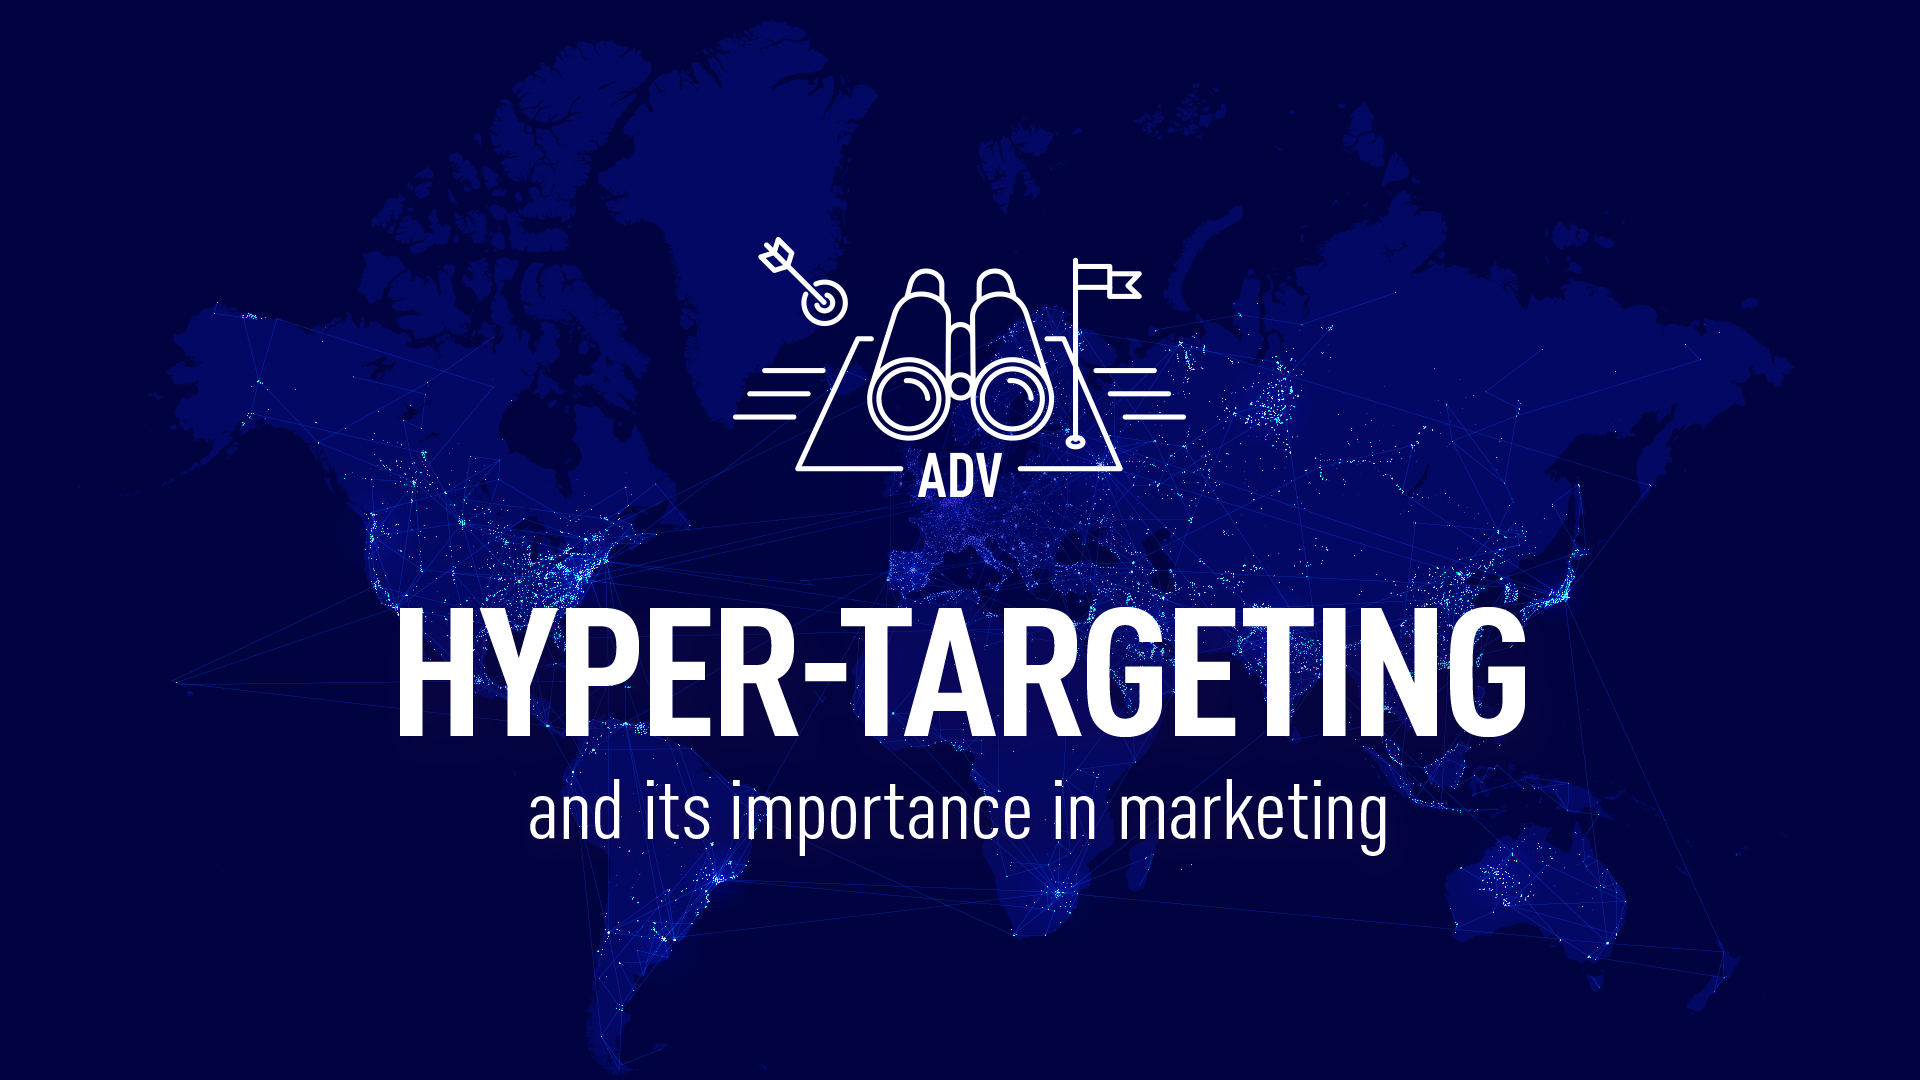 Hyper-targeting and its importance in marketing